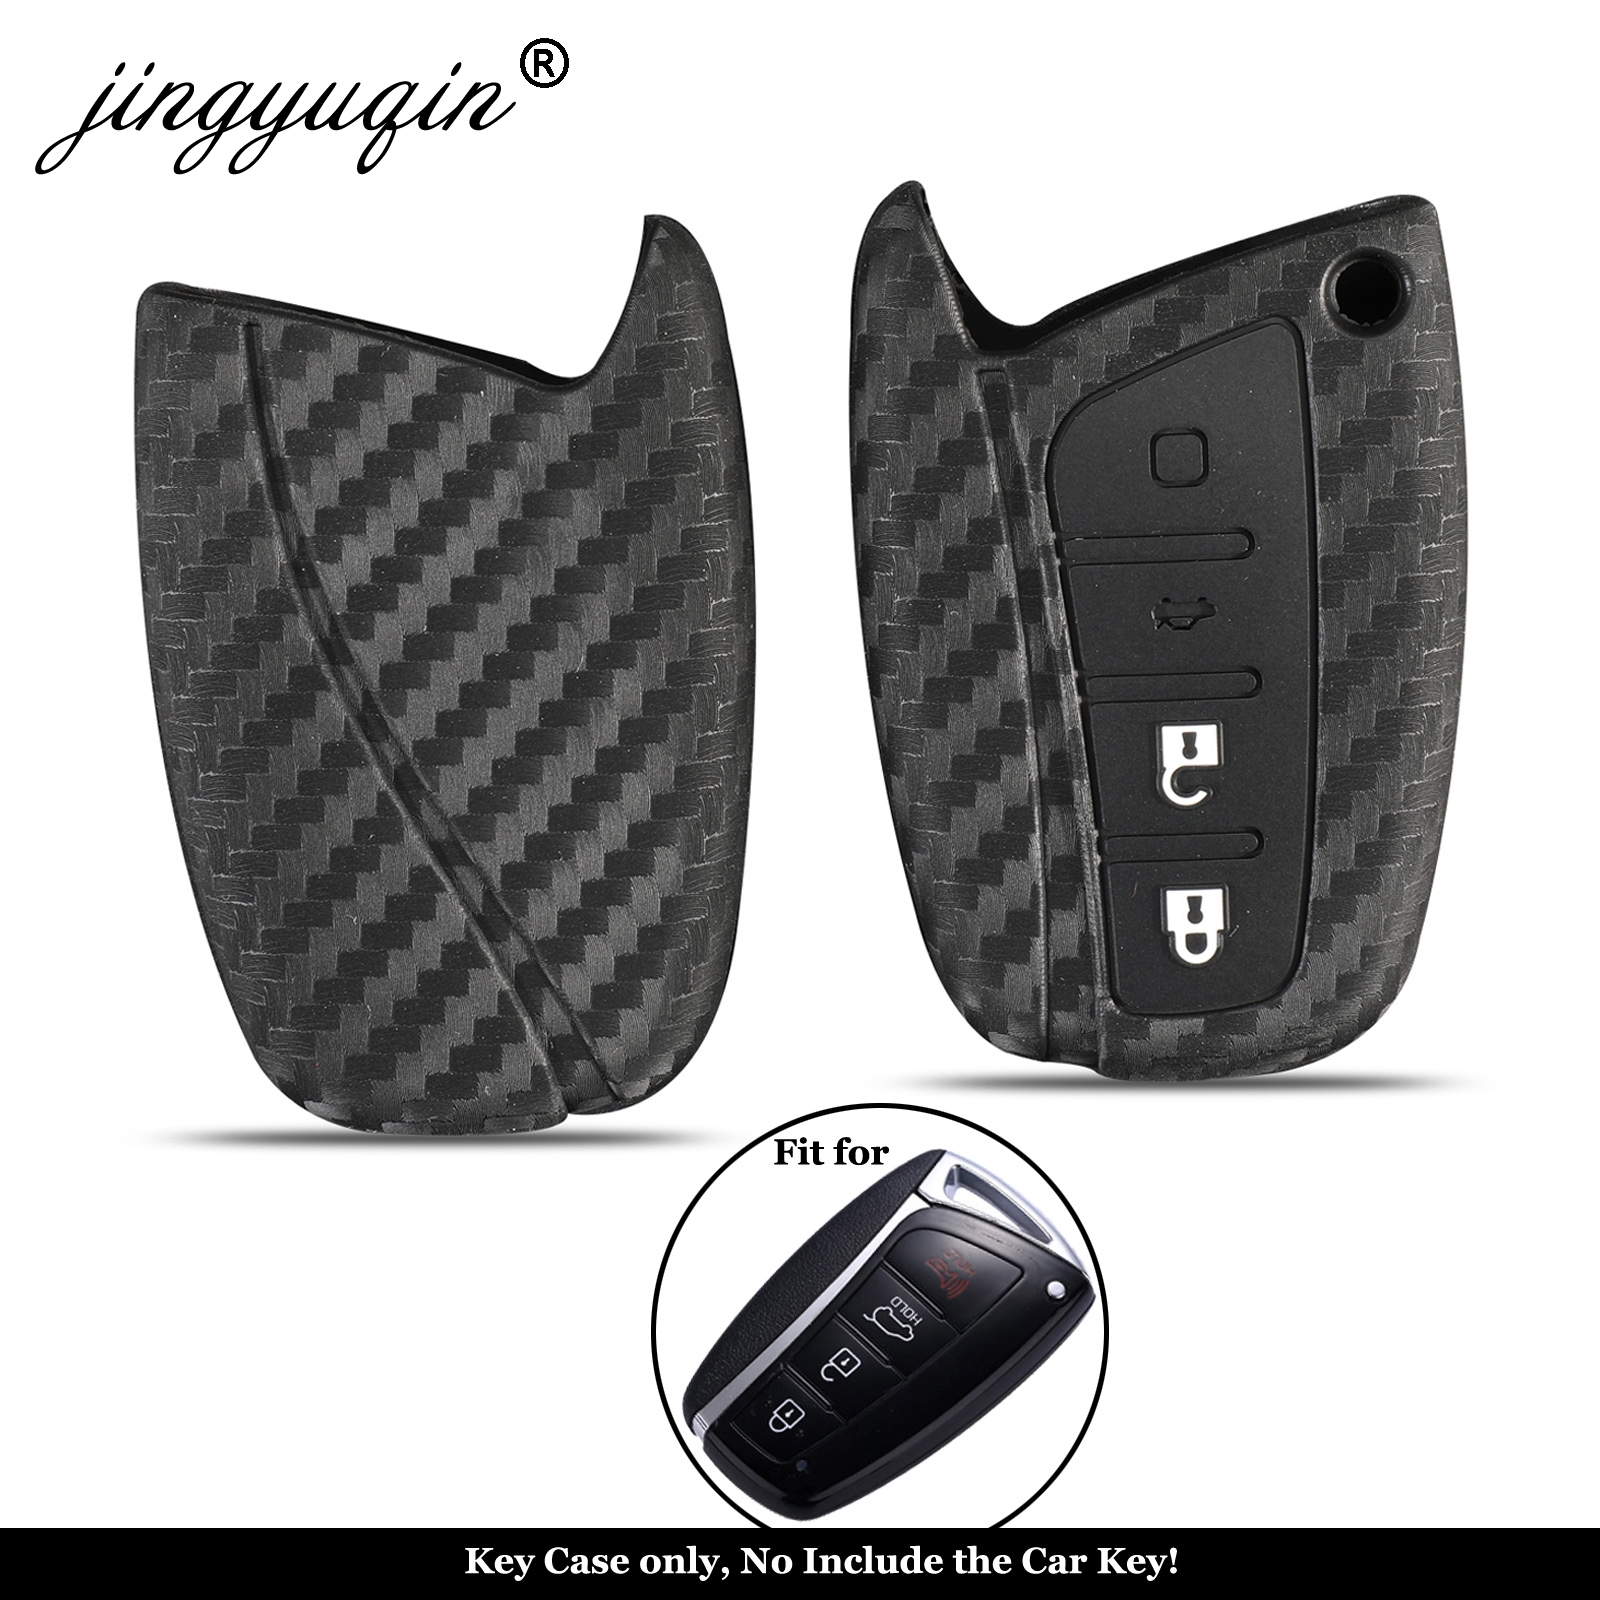 Jingyuqin For Hyundai Santa Fe IX35 Grand Car Styling 4 Buttons Auto Key Cover Carbon Silicone Remote Key Case Protection